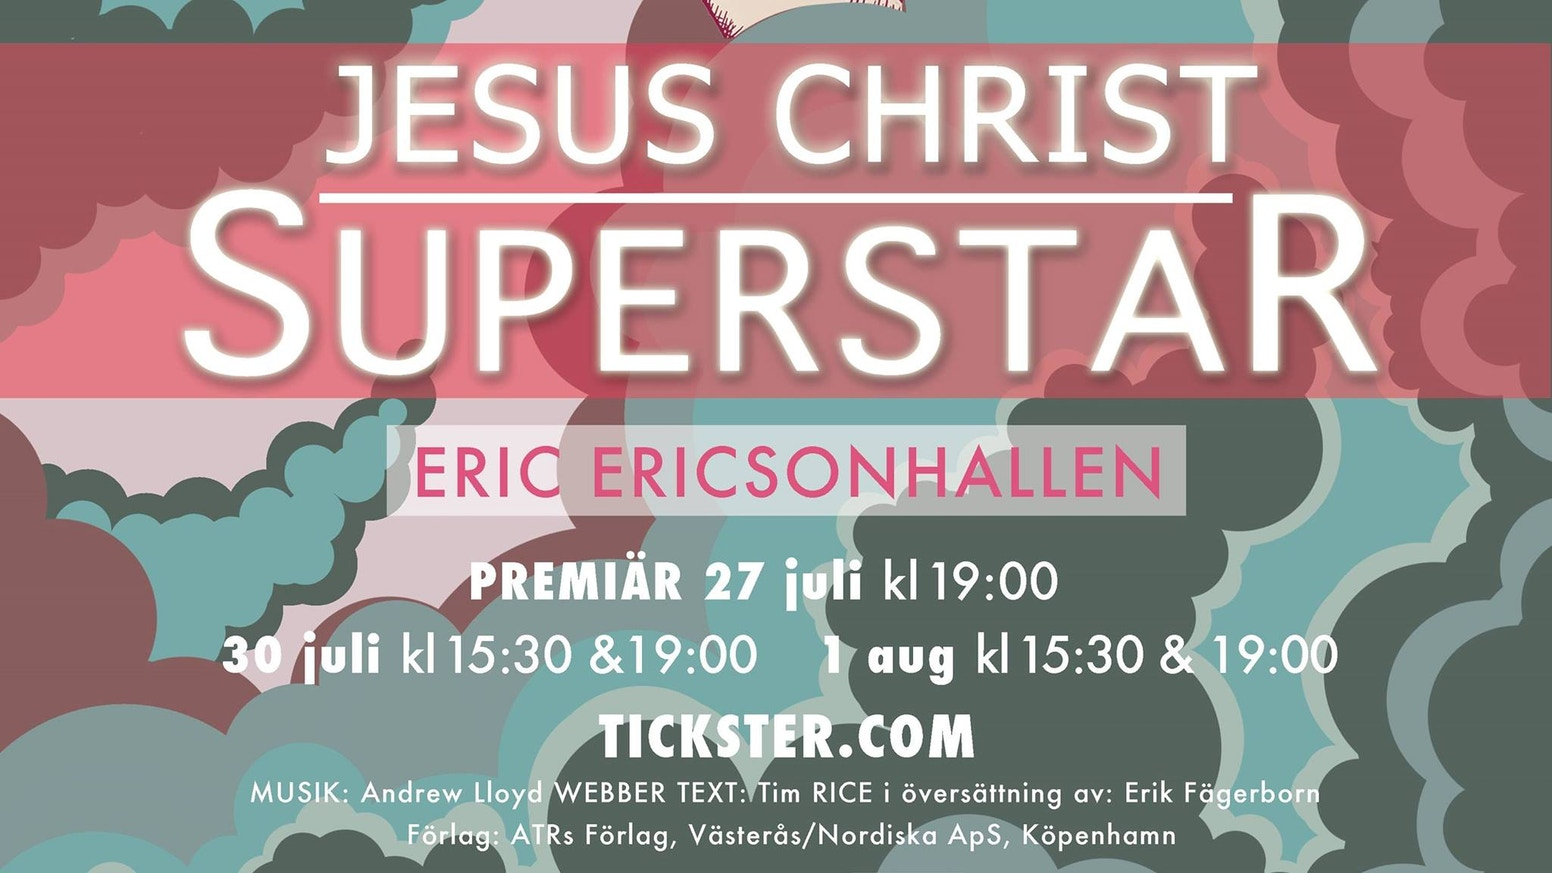 Jesus Christ Superstar with a feminist twist! is the top crowdfunding project launched today. Jesus Christ Superstar with a feminist twist! raised over $52613 from 76 backers. Other top projects include Focus Checker, CrowdLobby: Giving Everyday Americans Access to Lobbyists, Chez Genèse - French Cafe Employing Adults w/ Disabilities...